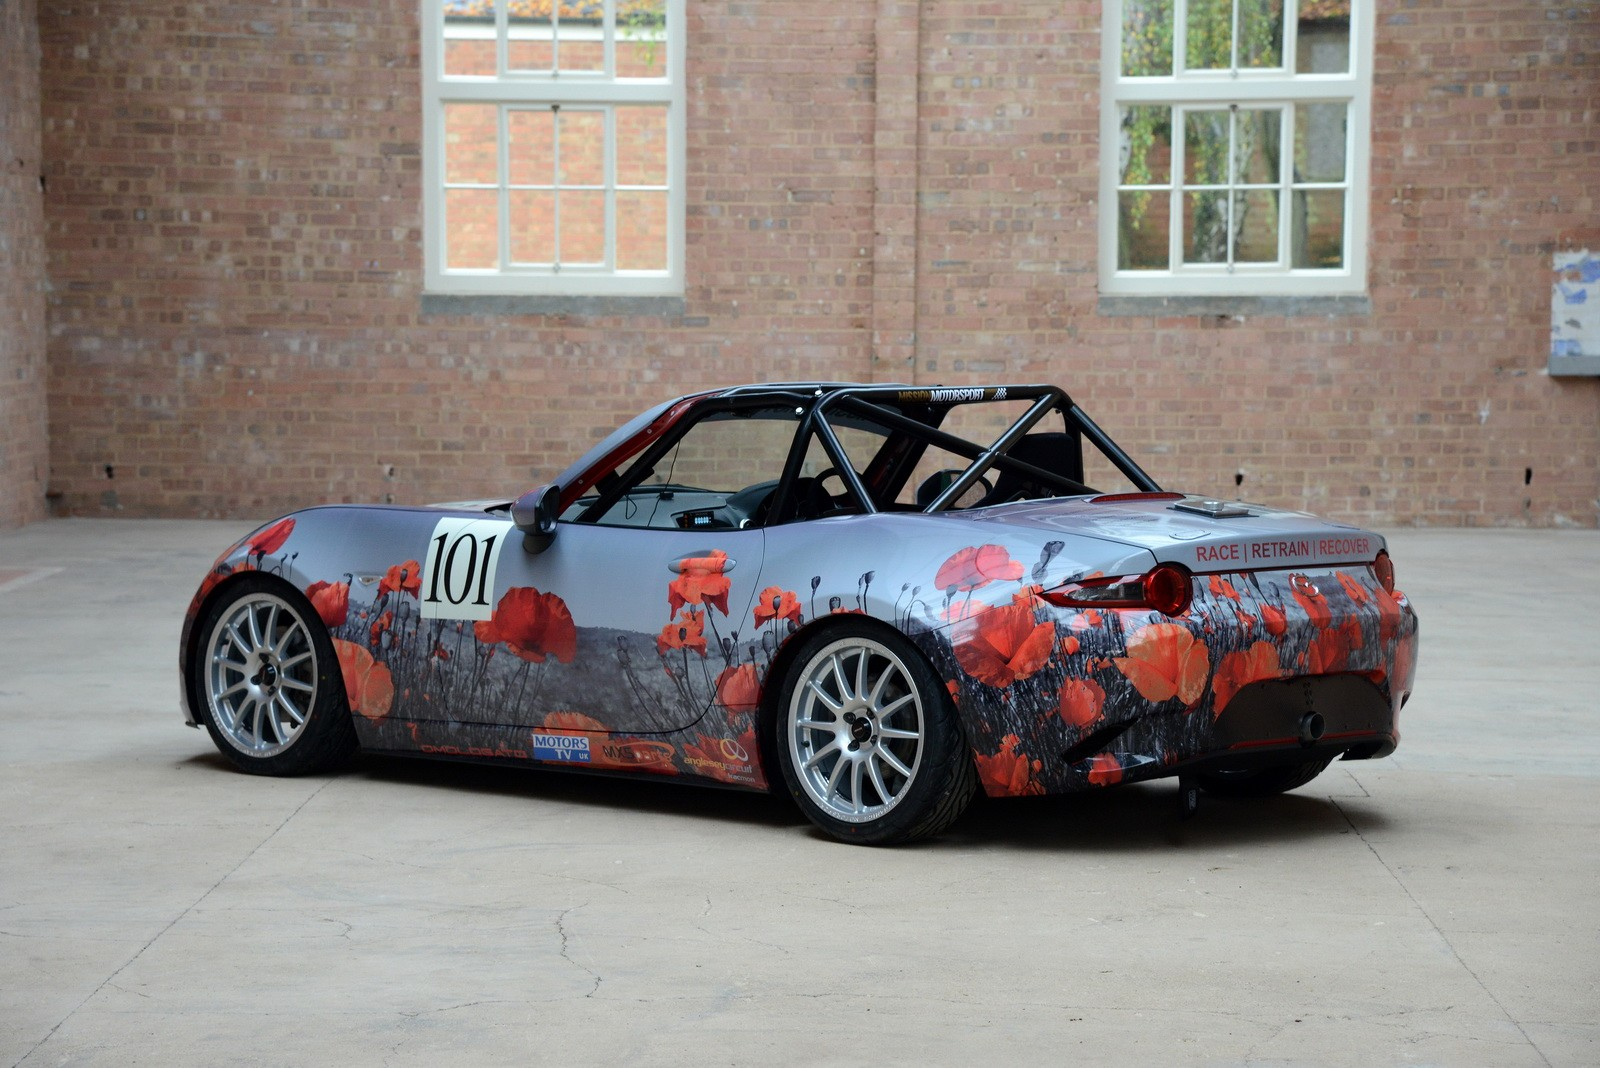 Miata With Poppy Art Car Livery Isn T Just For Show Autoevolution